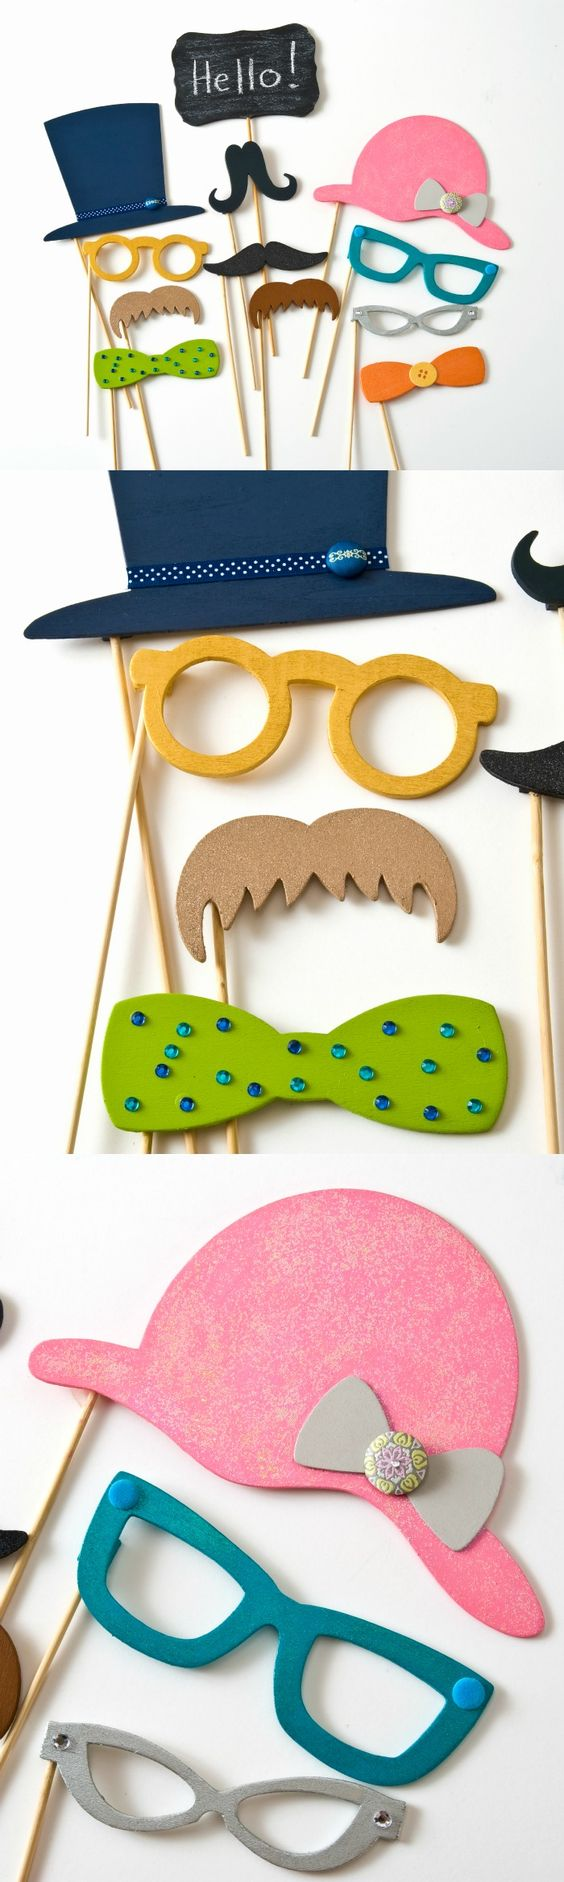 Do you want to incorporate a photo booth in an upcoming wedding or party? These colorful photo booth props are easy to decorate!: